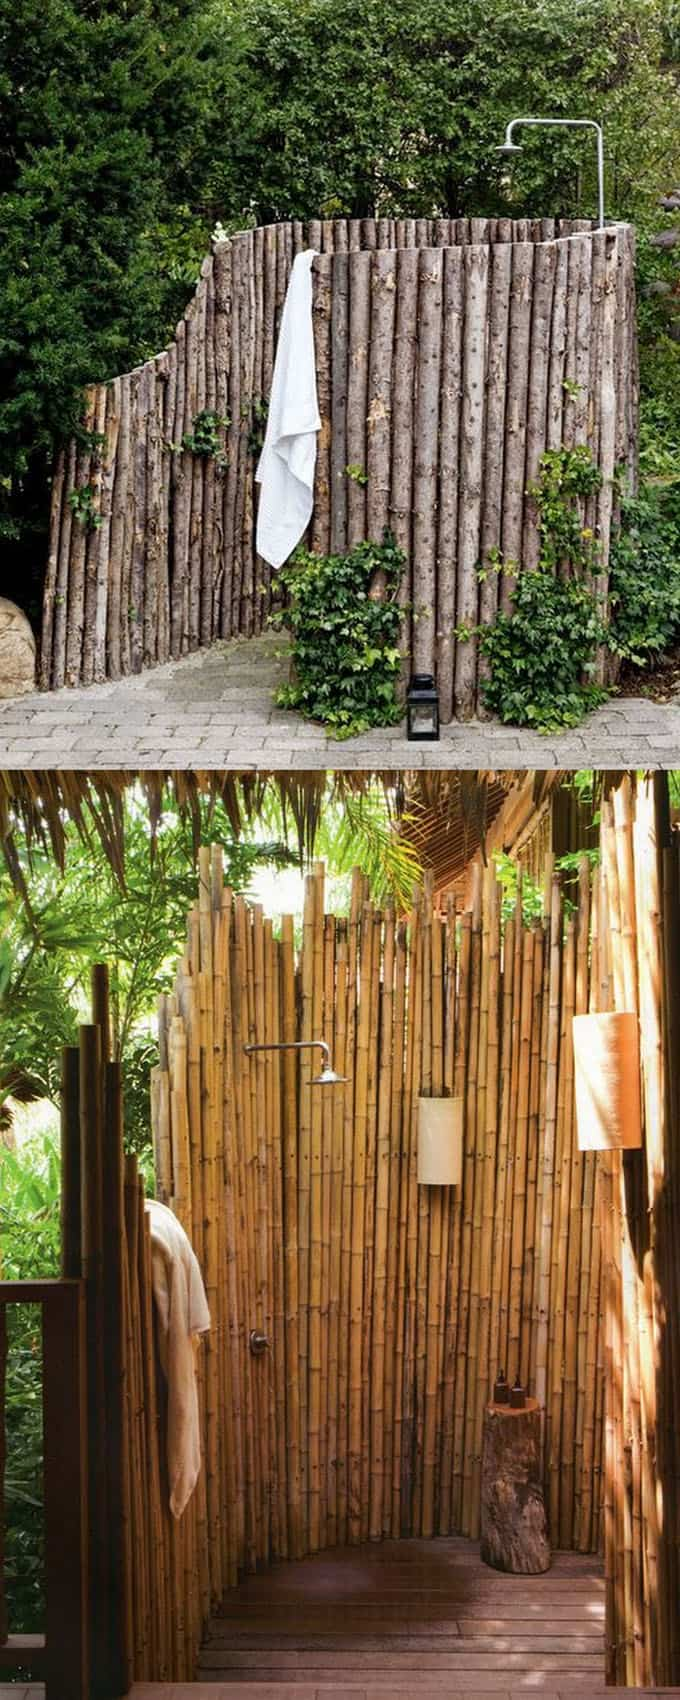 backyard DIY Outdoor Shower ideas using bamboo fence and logs